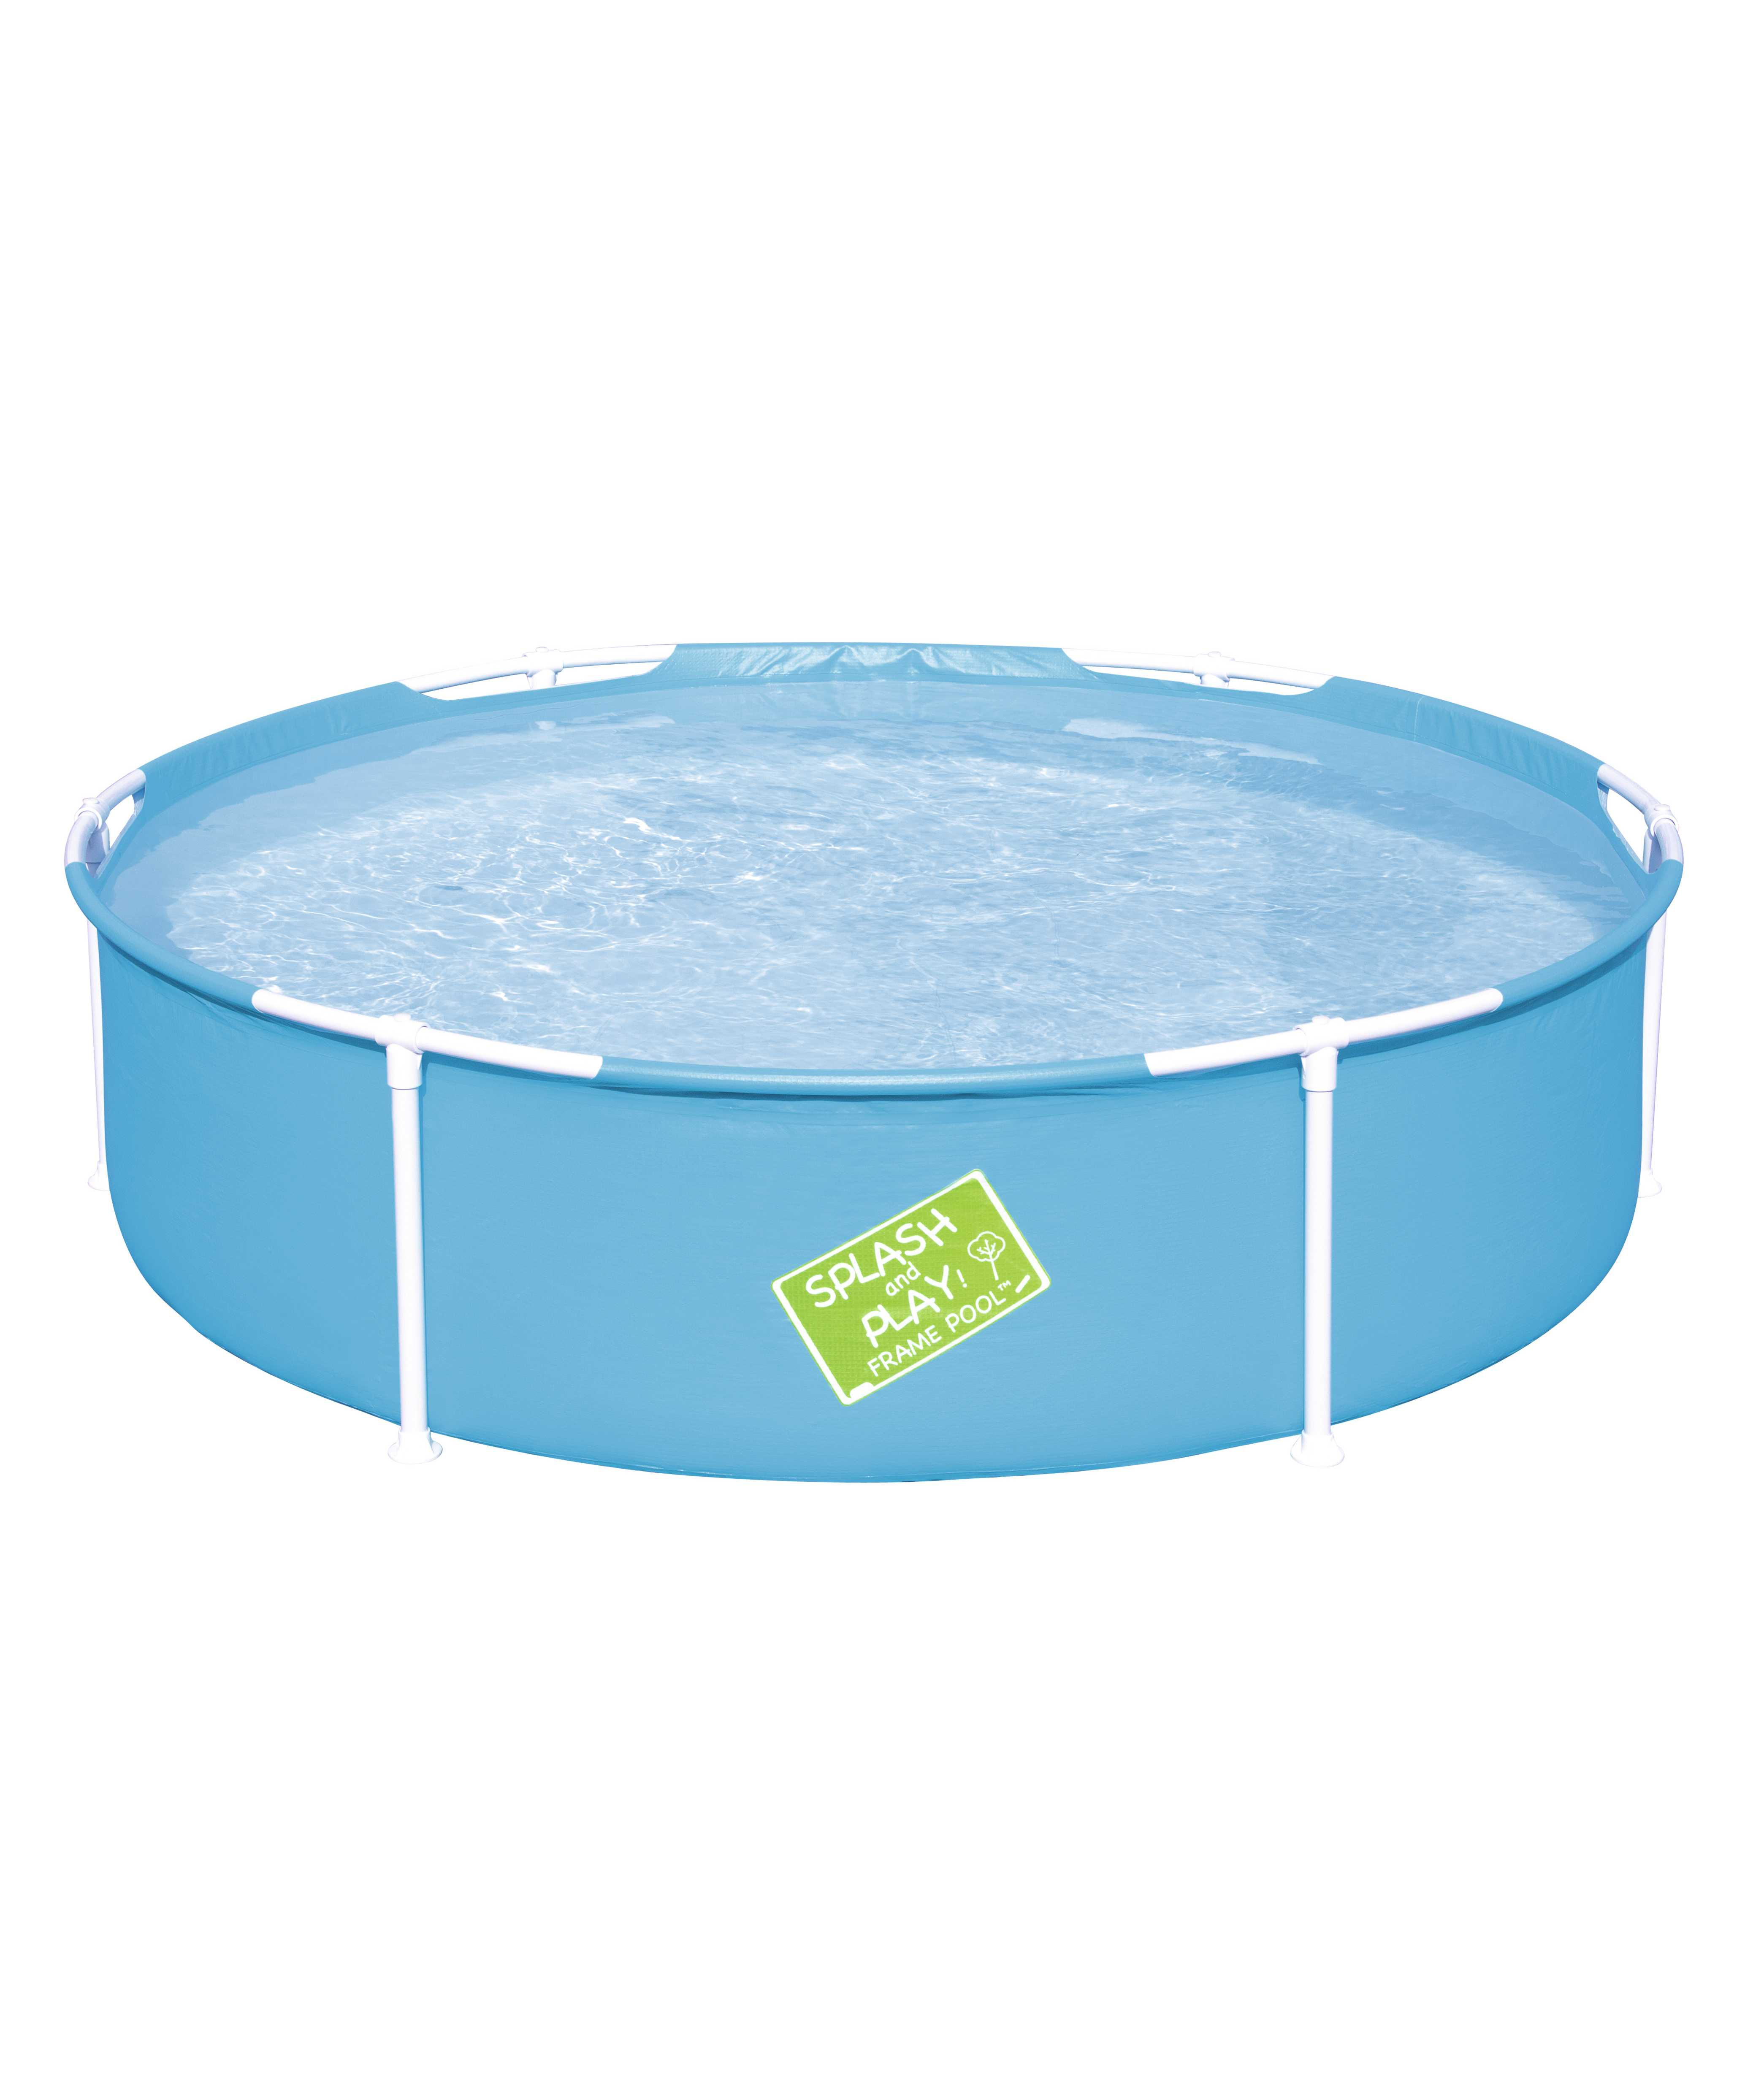 Scaffold Round Basin 152 х38 Cm, 580 L, For Children From 2 Years, Bestway, Item No. 56283